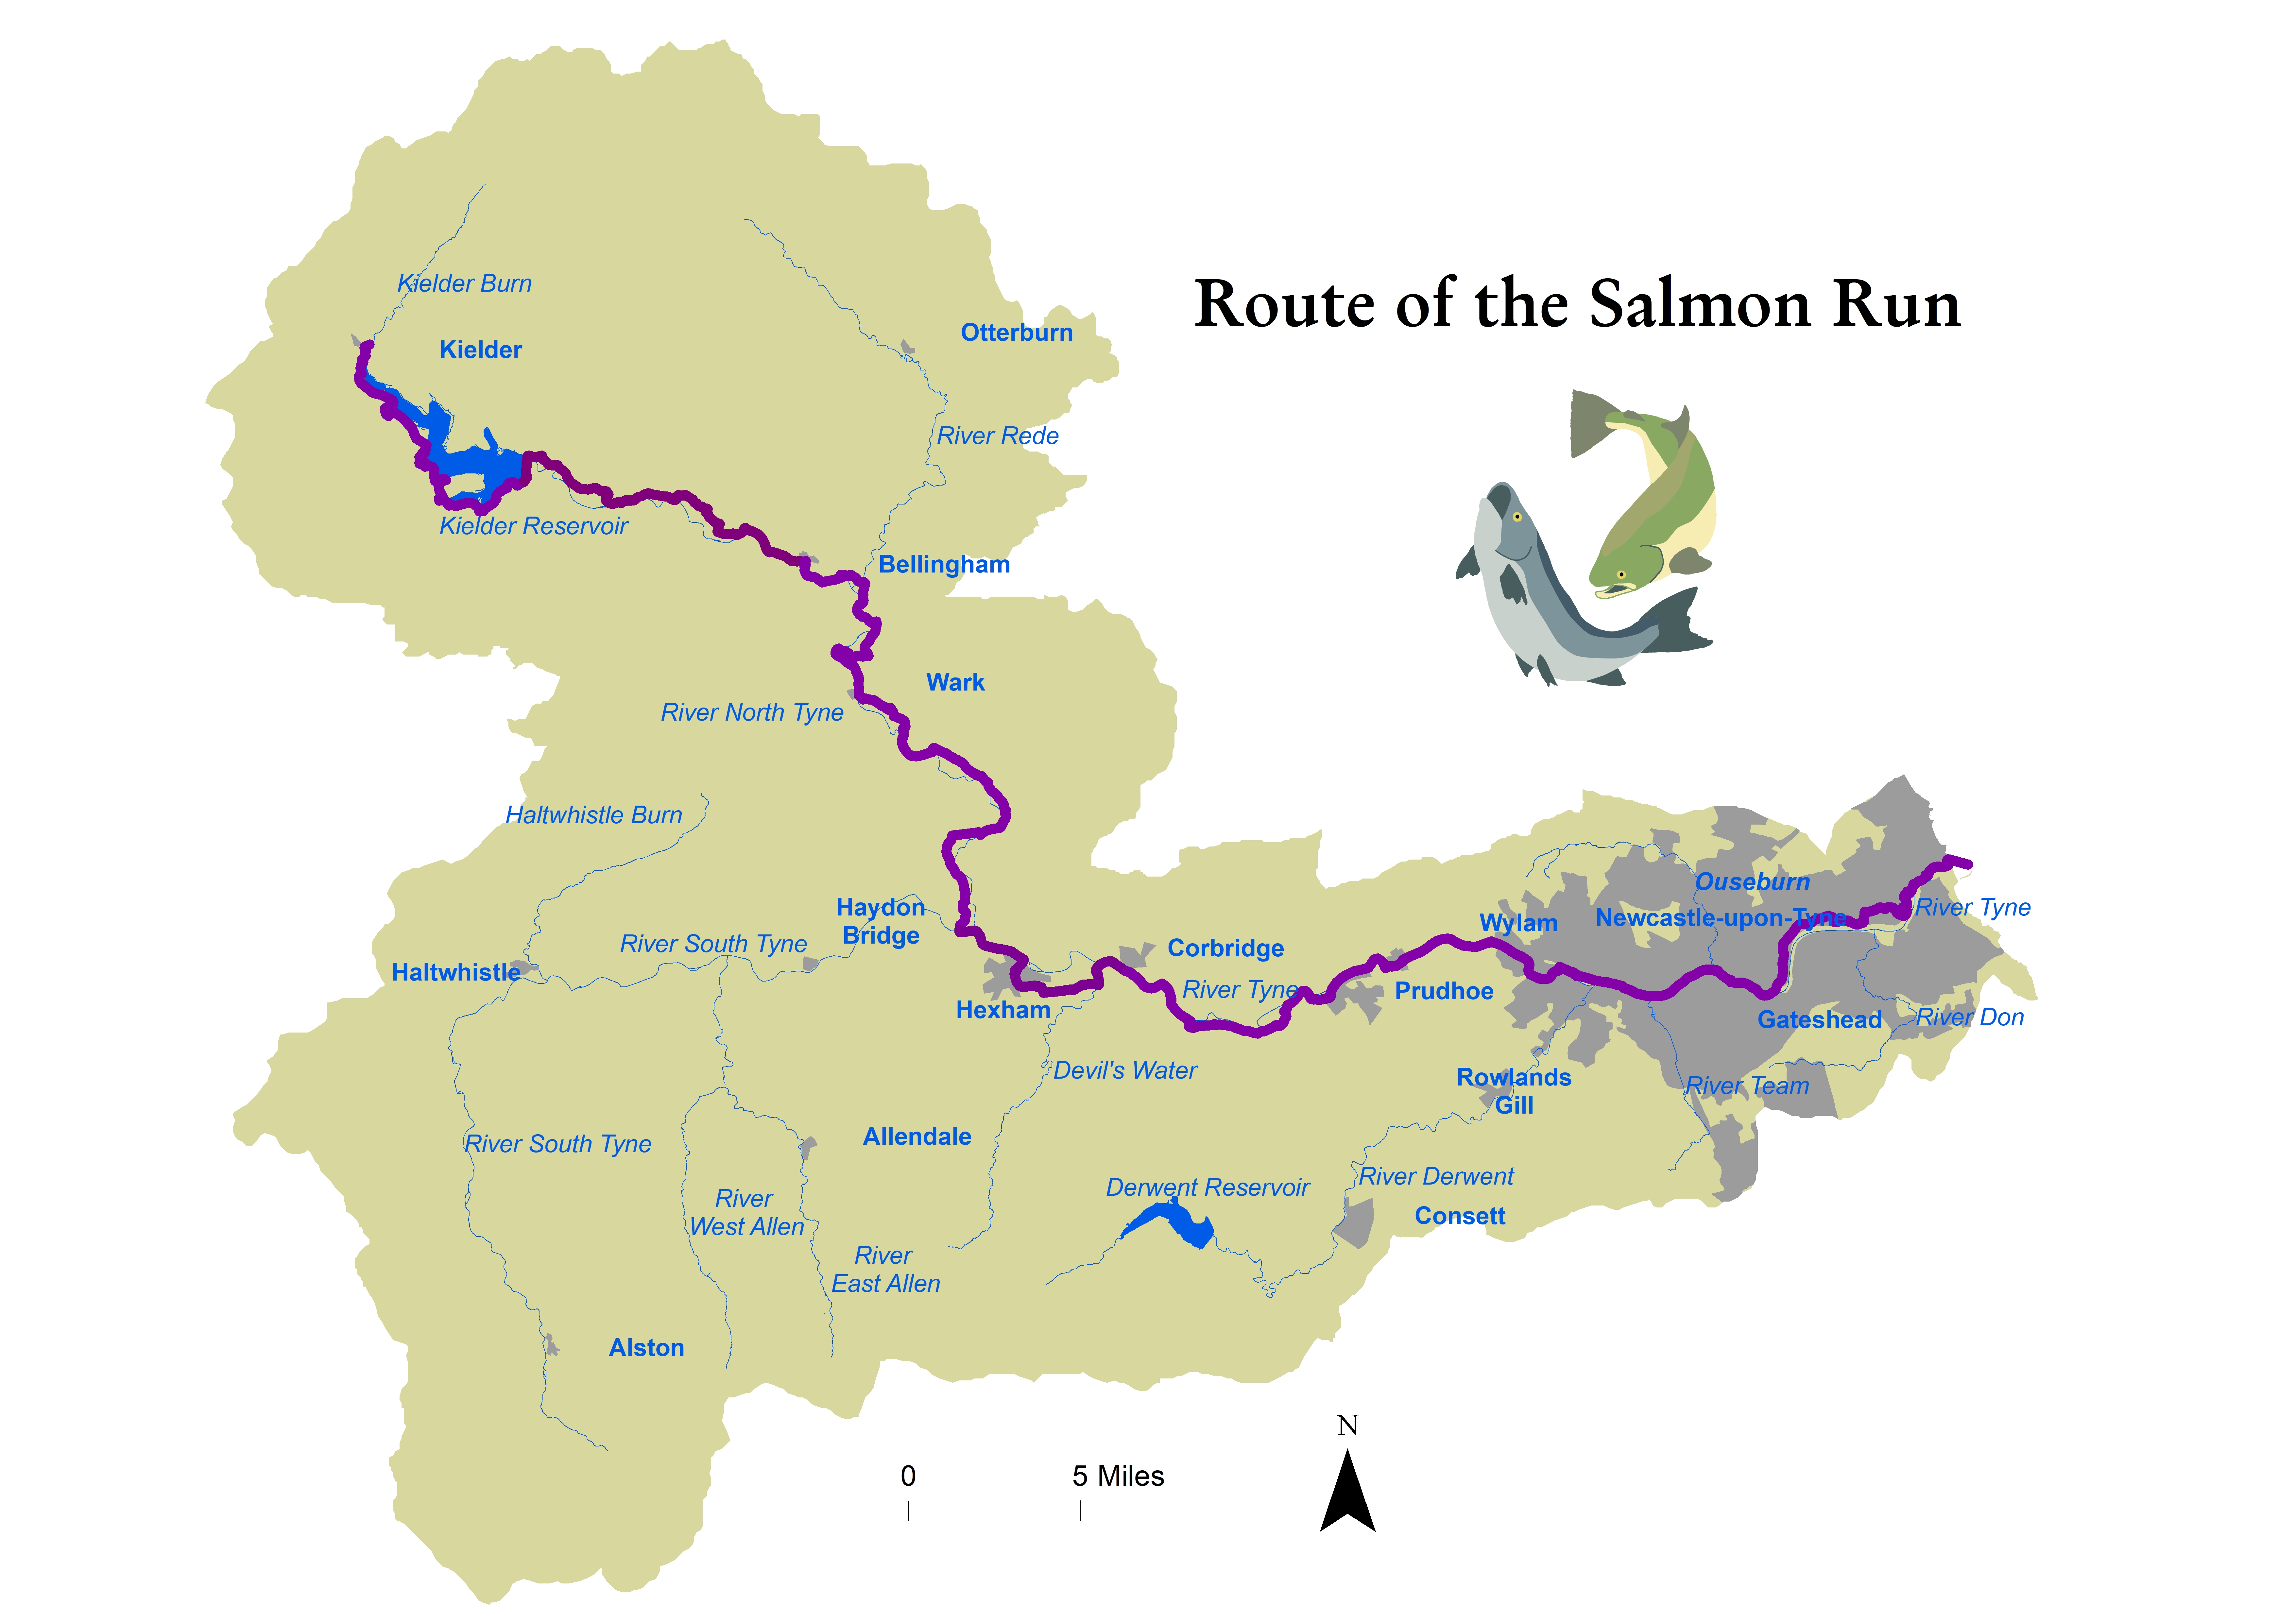 Route of the Salmon Run